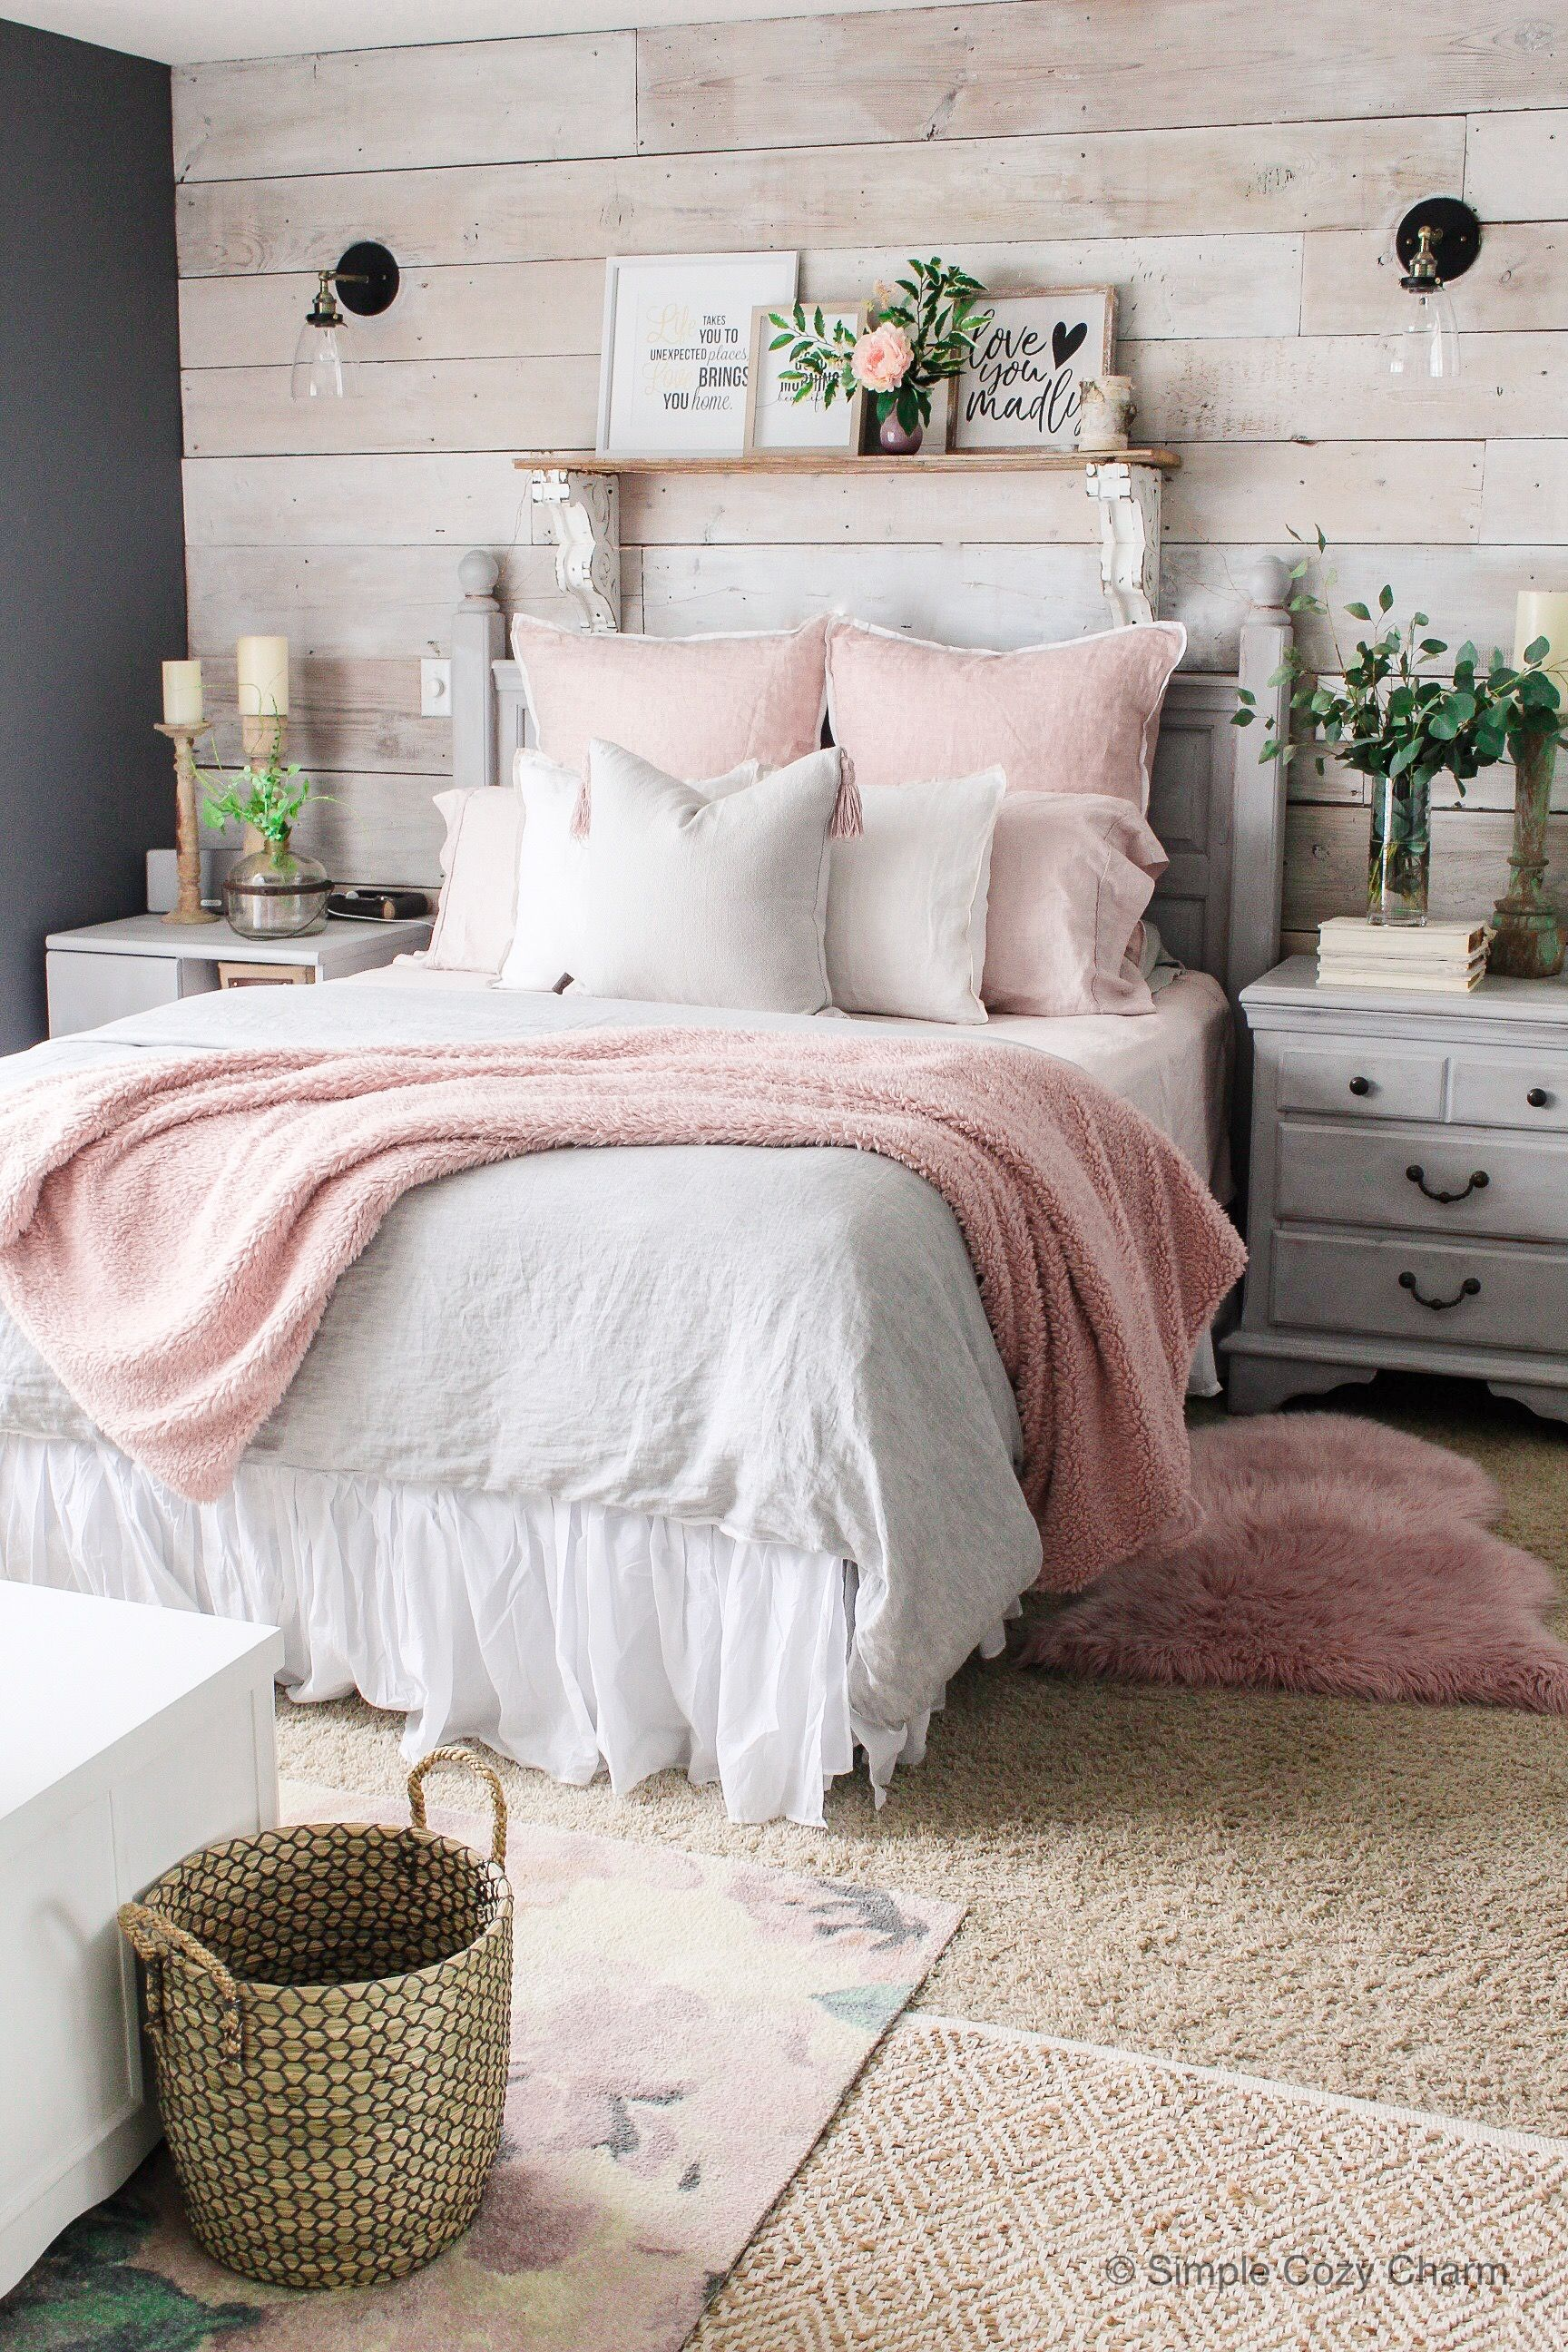 Mid-Winter Bedroom Facelift - Simple Cozy Charm #girlsbedroom